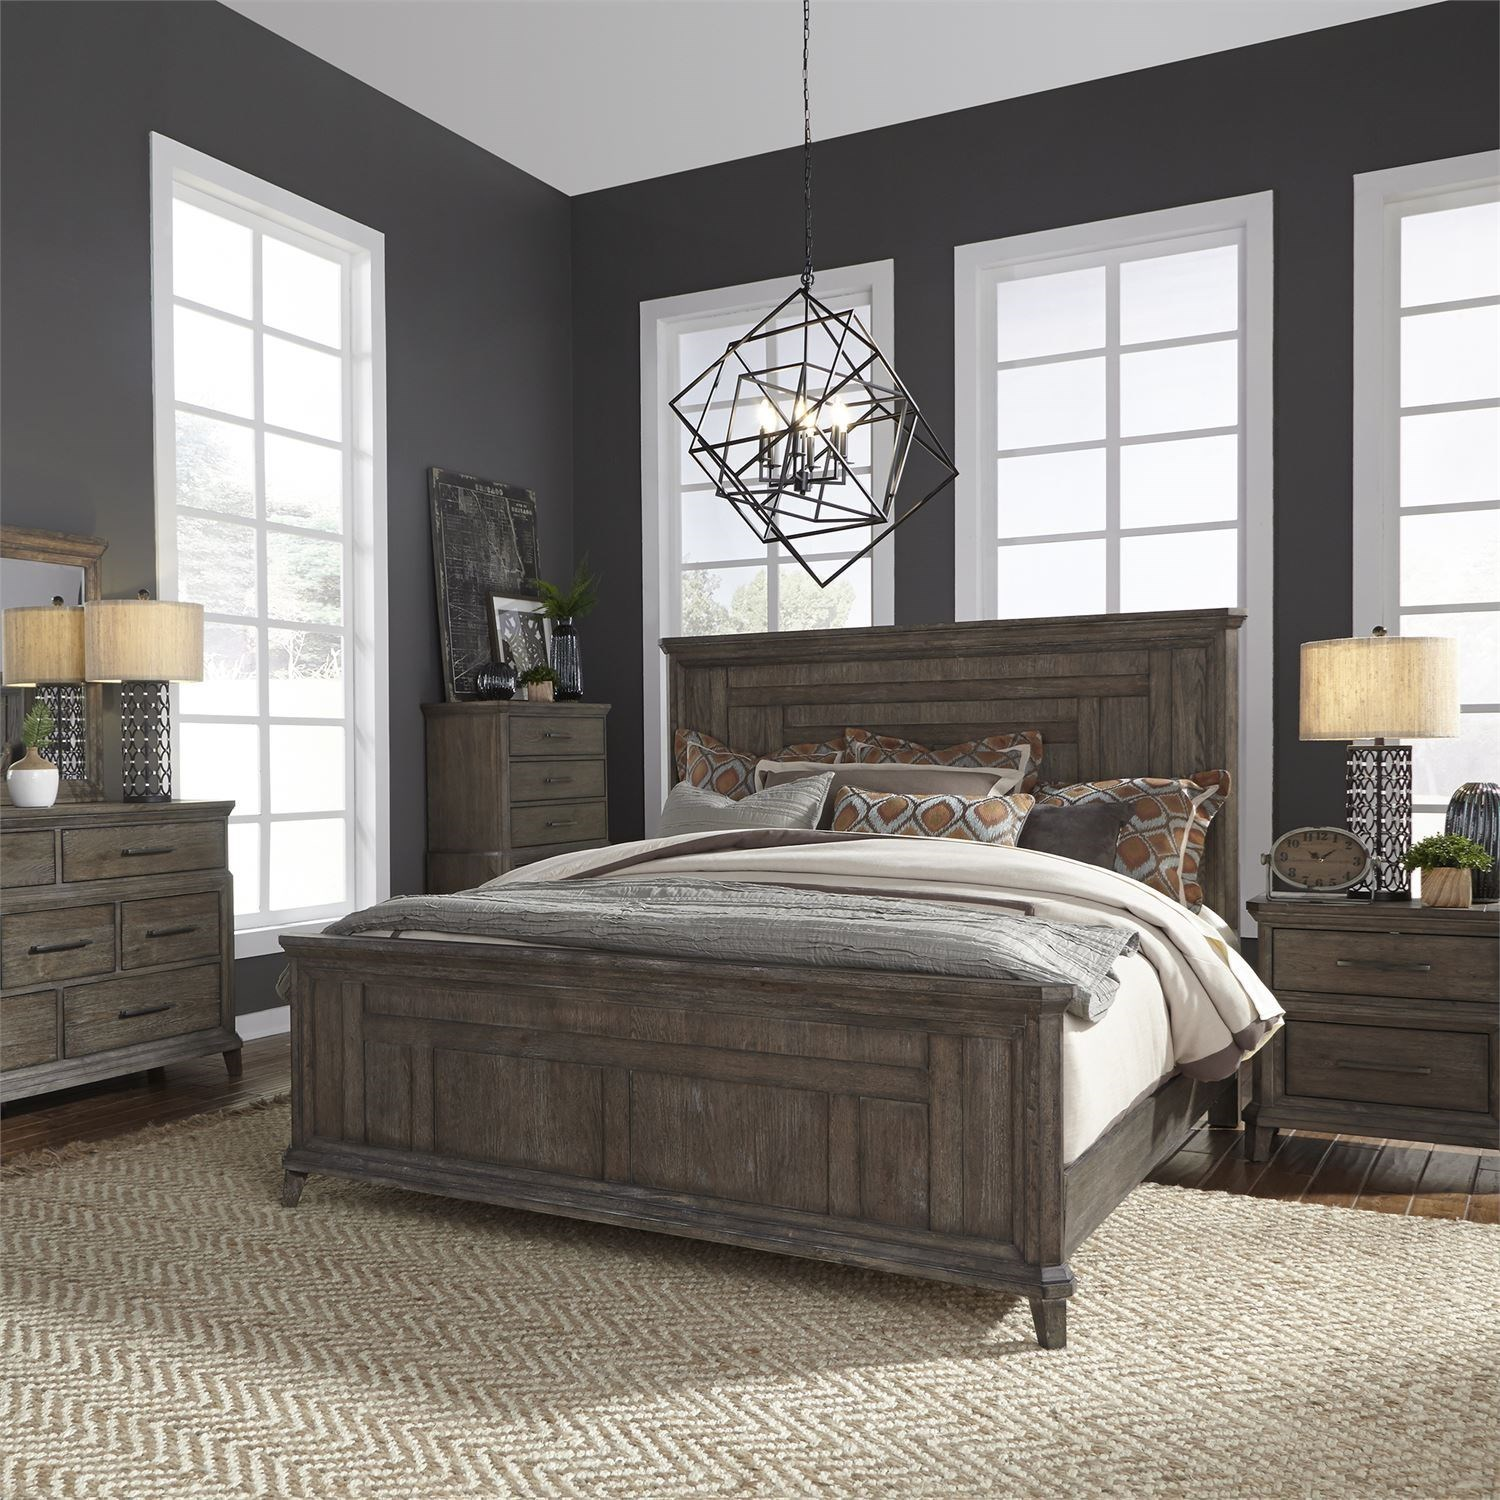 Artisan Prairie Queen Bedroom Group by Liberty Furniture at Northeast Factory Direct